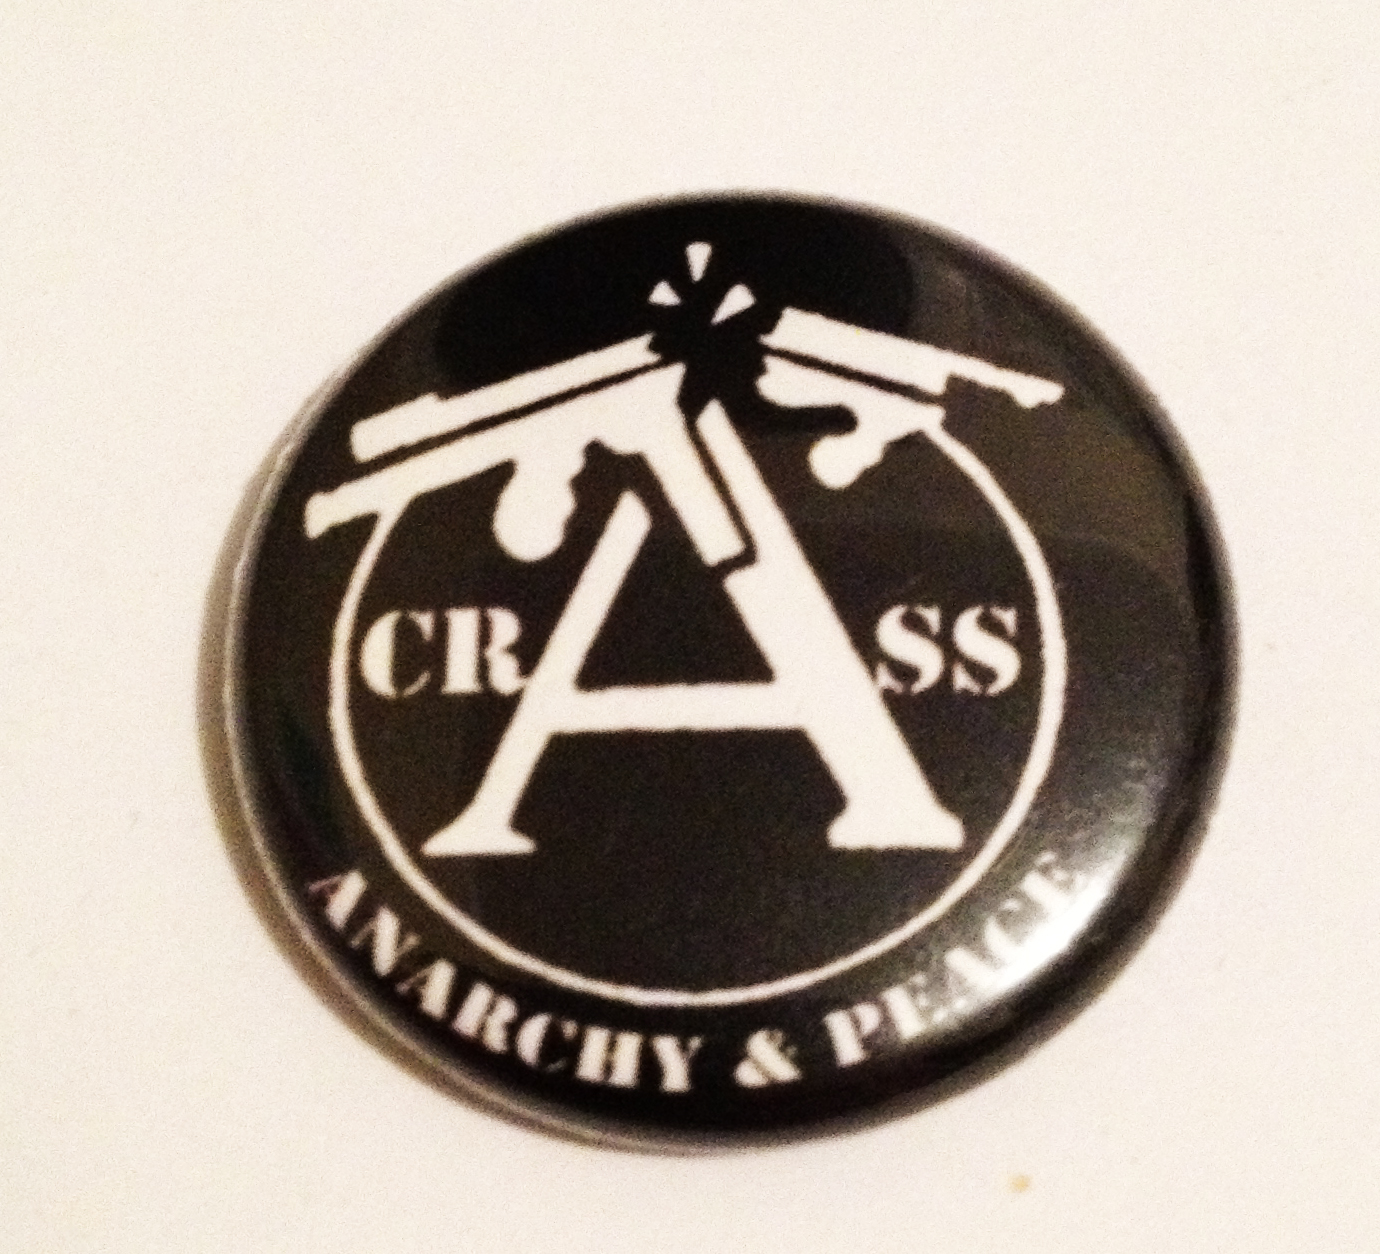 Crass_original